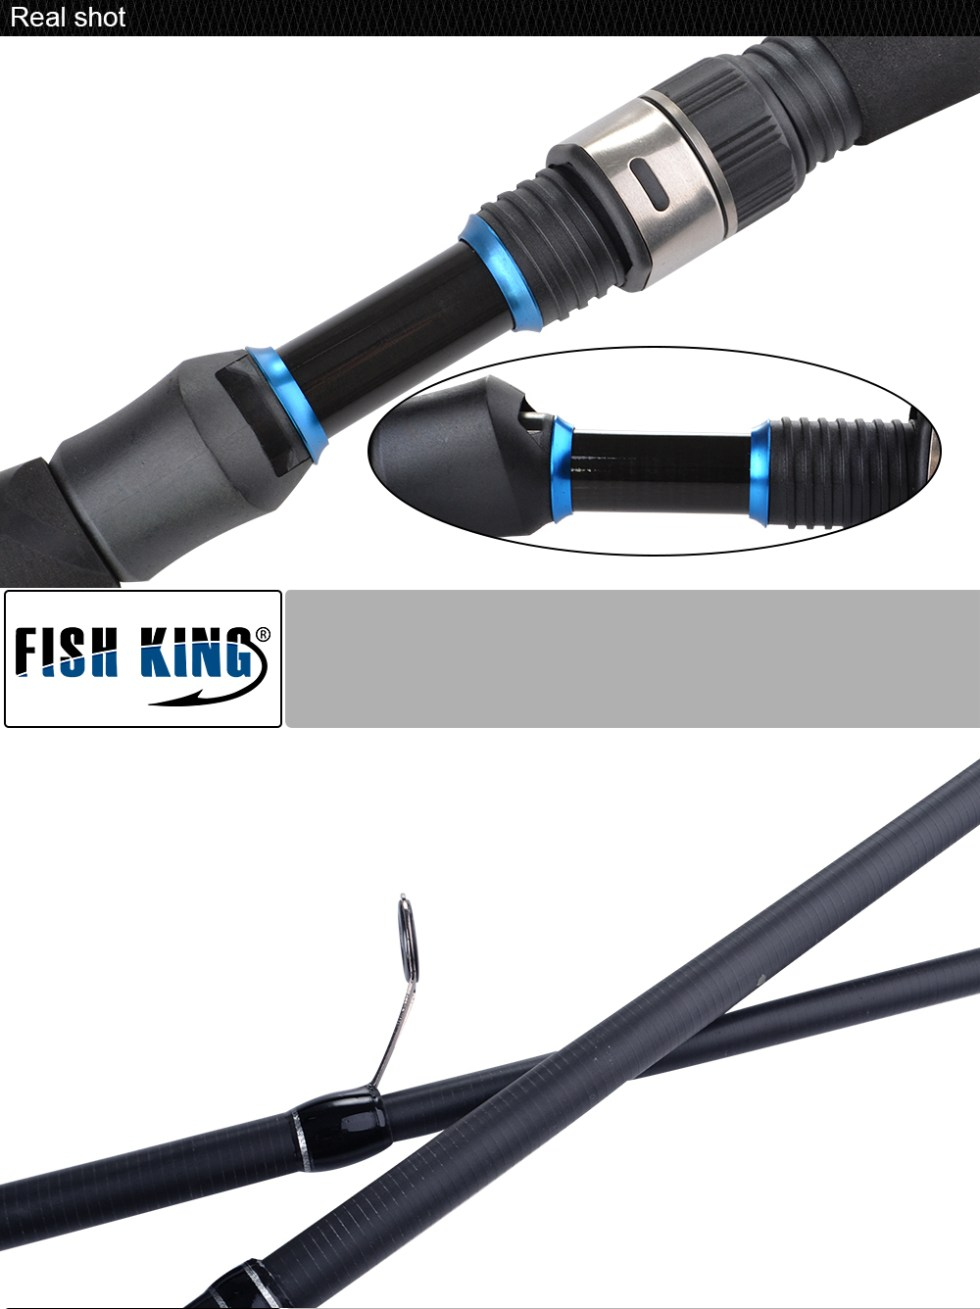 FISH KING 24T 99% Carbon Carp Rod 2.1M/2.4M/2.7M Superhard High Quality Telescopic Fishing Rod Pesca 6